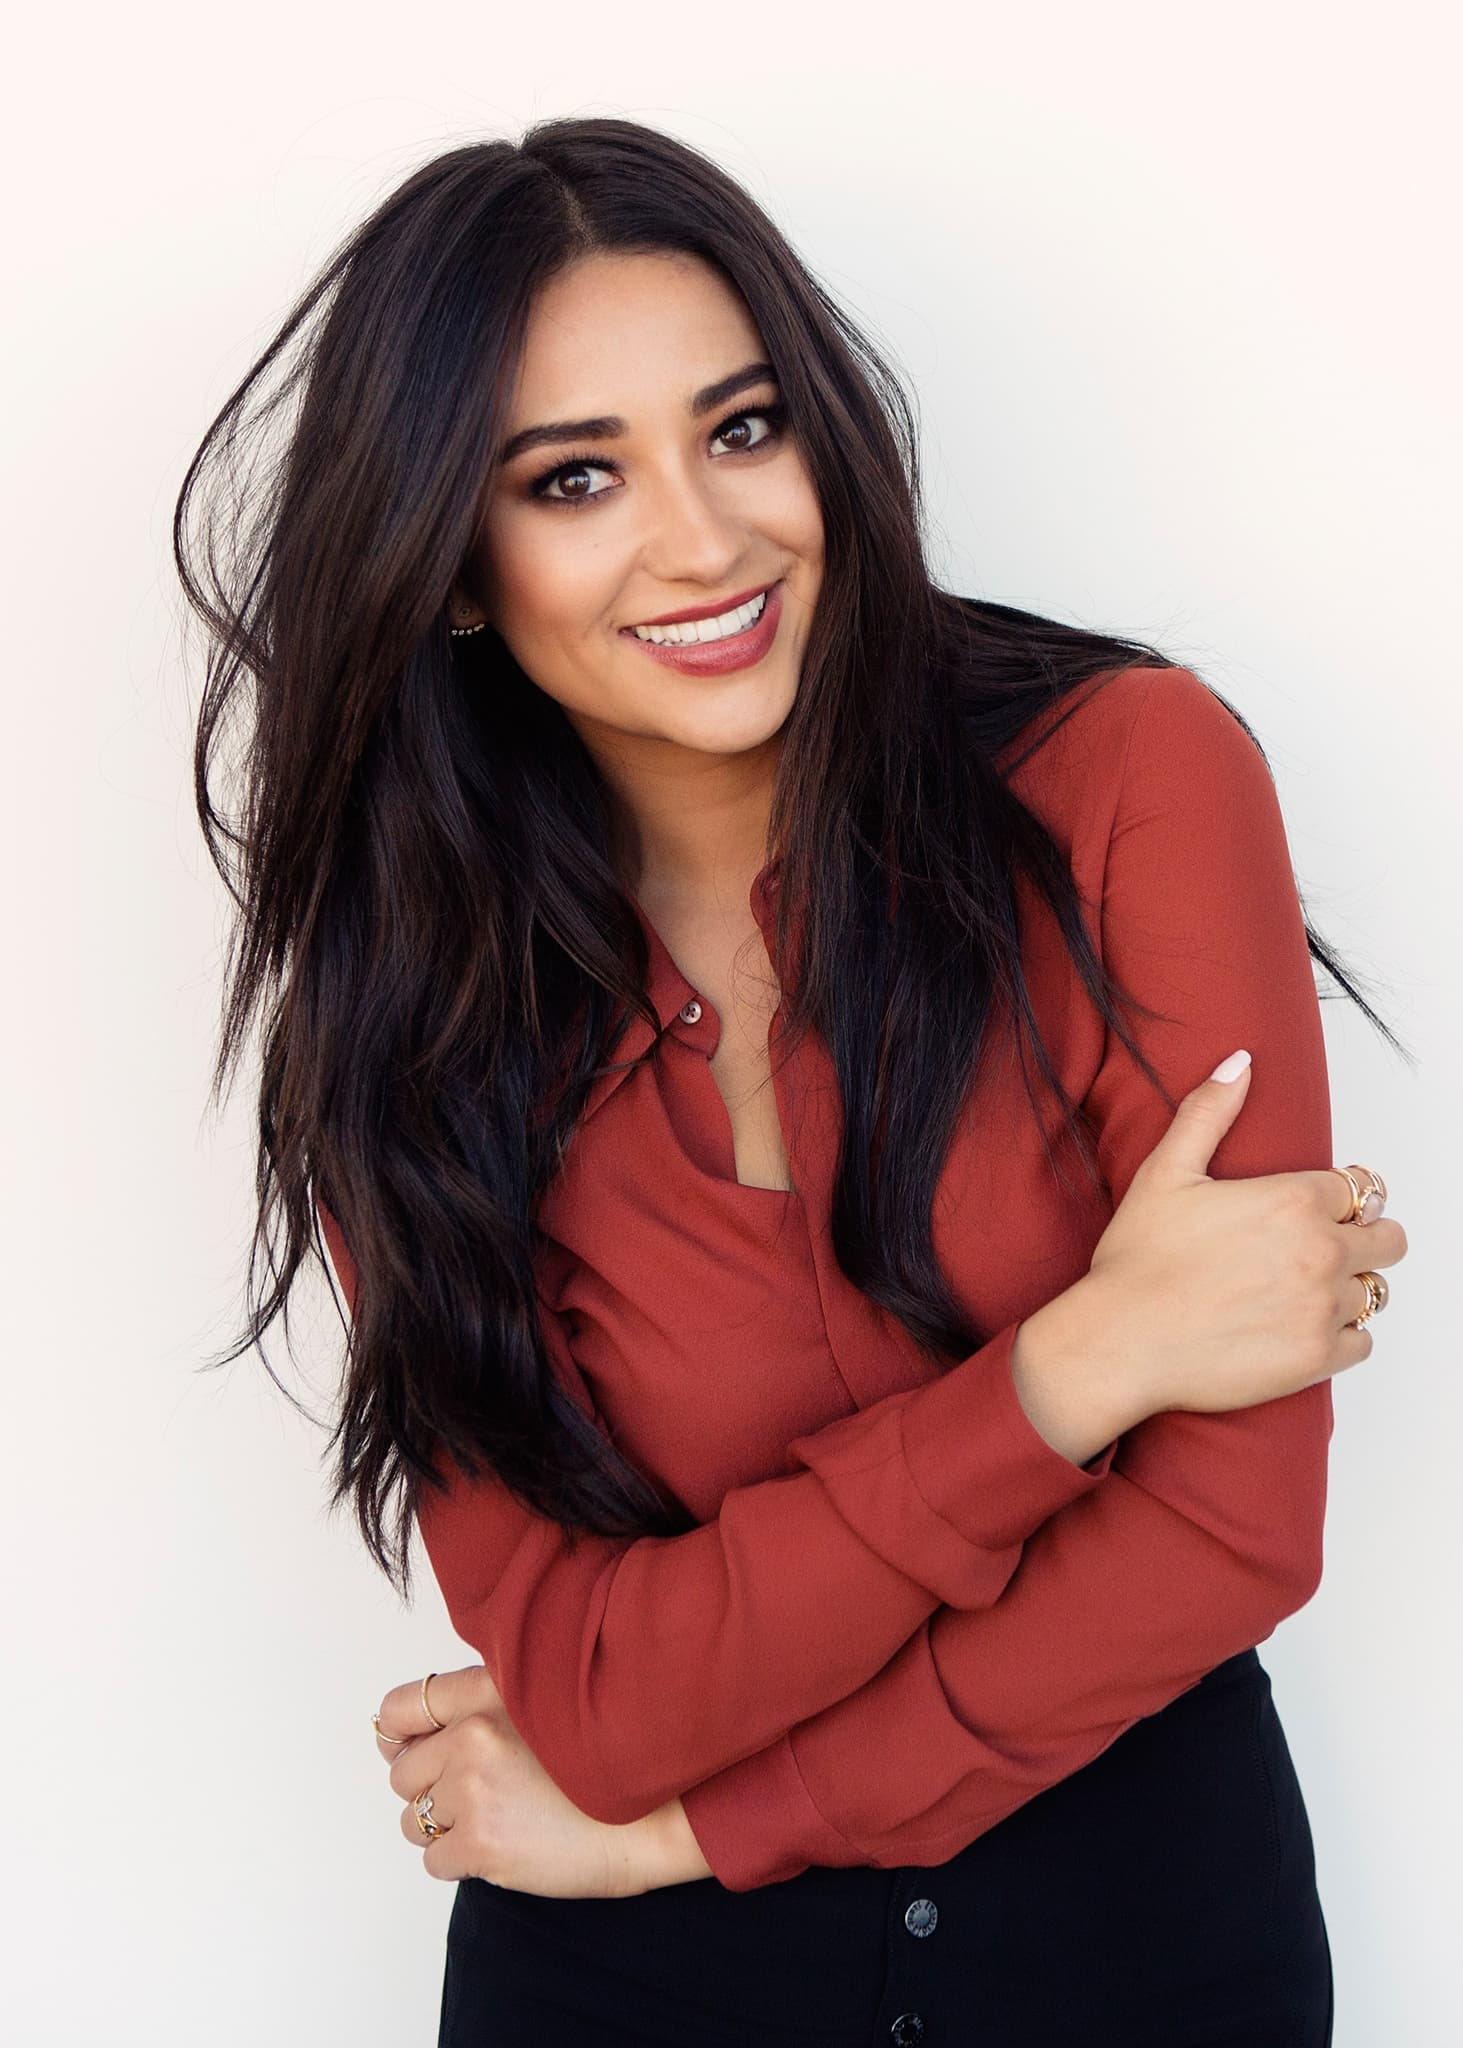 Girls Hd Wallpapers Shay Mitchell Wallpapers Hd High Quality Download